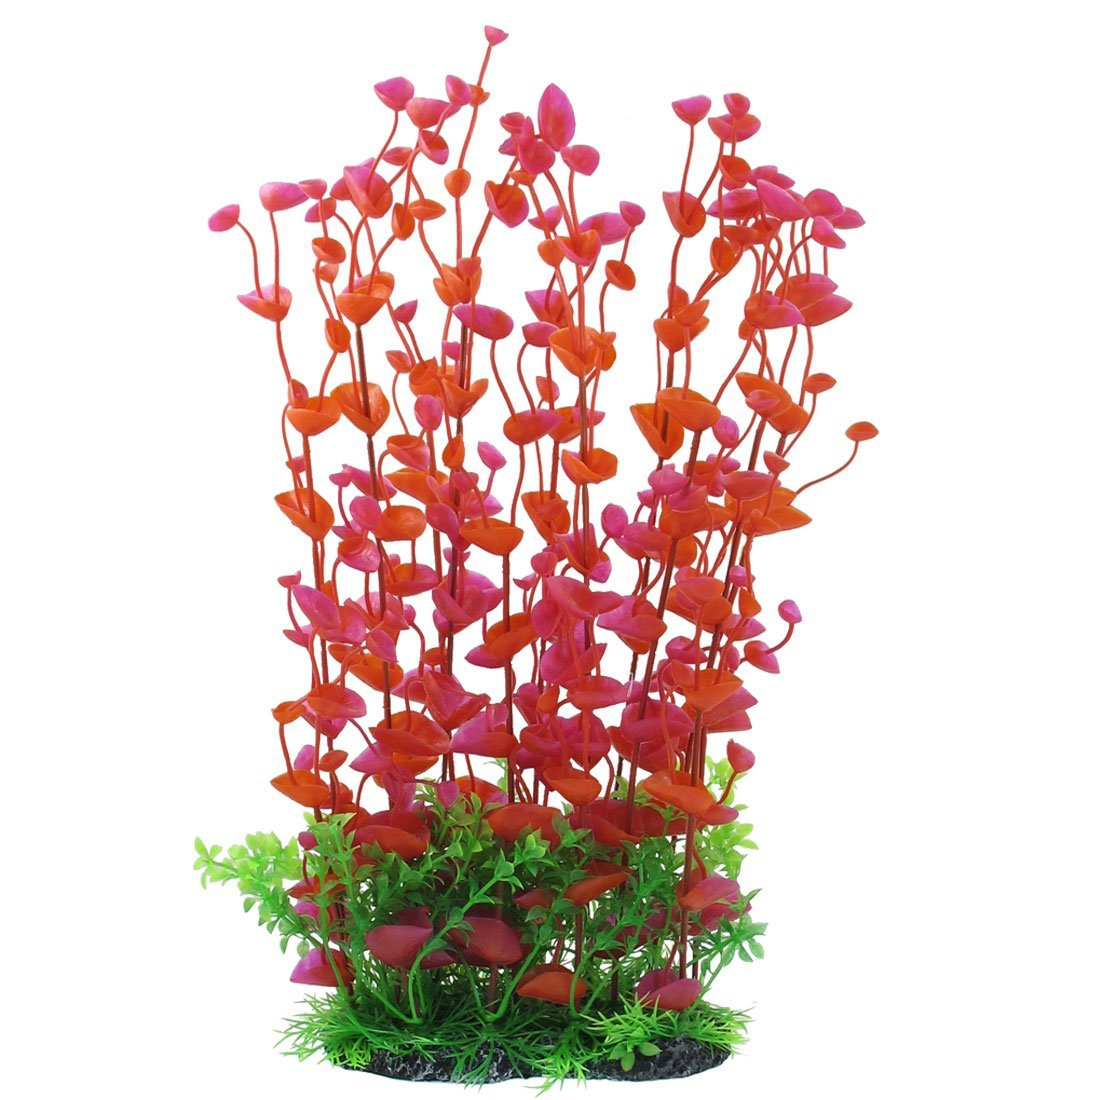 HTHL 5* ! Manmade Plastic Plant Fish Tank, 14.2-Inch Height, Red/Green,IN STOCK